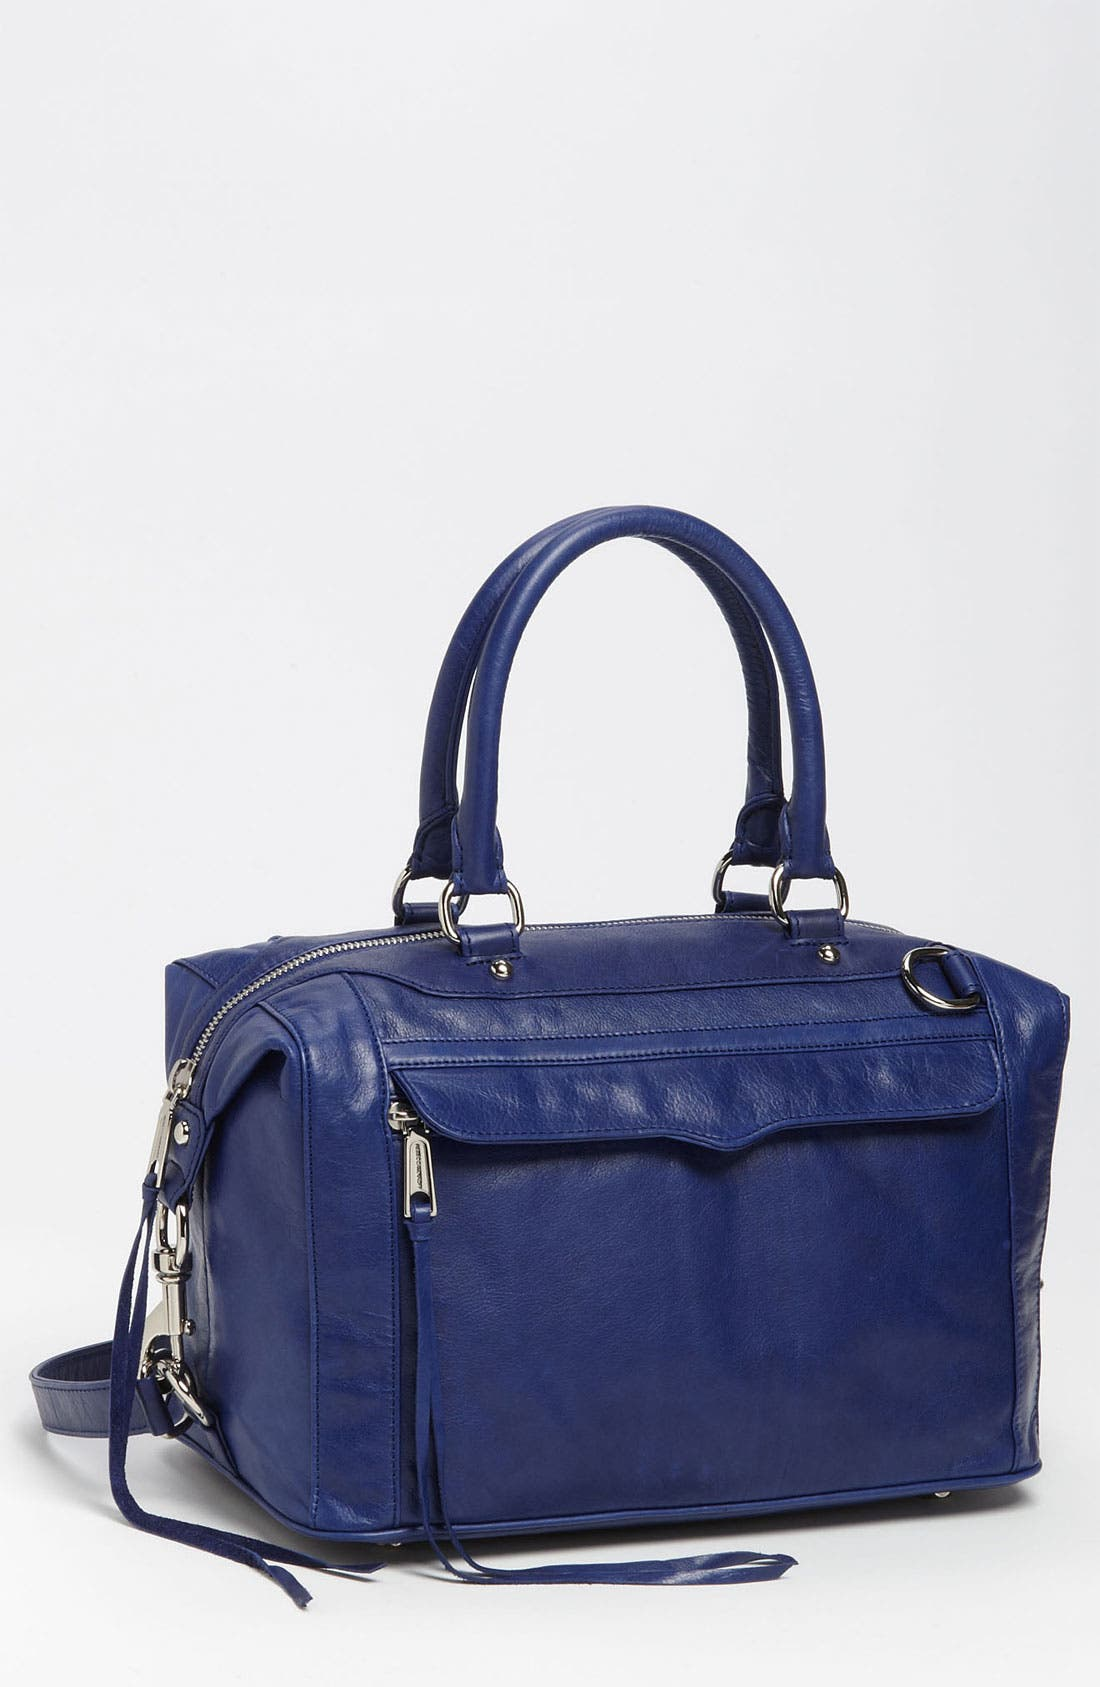 Alternate Image 1 Selected - Rebecca Minkoff 'MAB' Leather Satchel